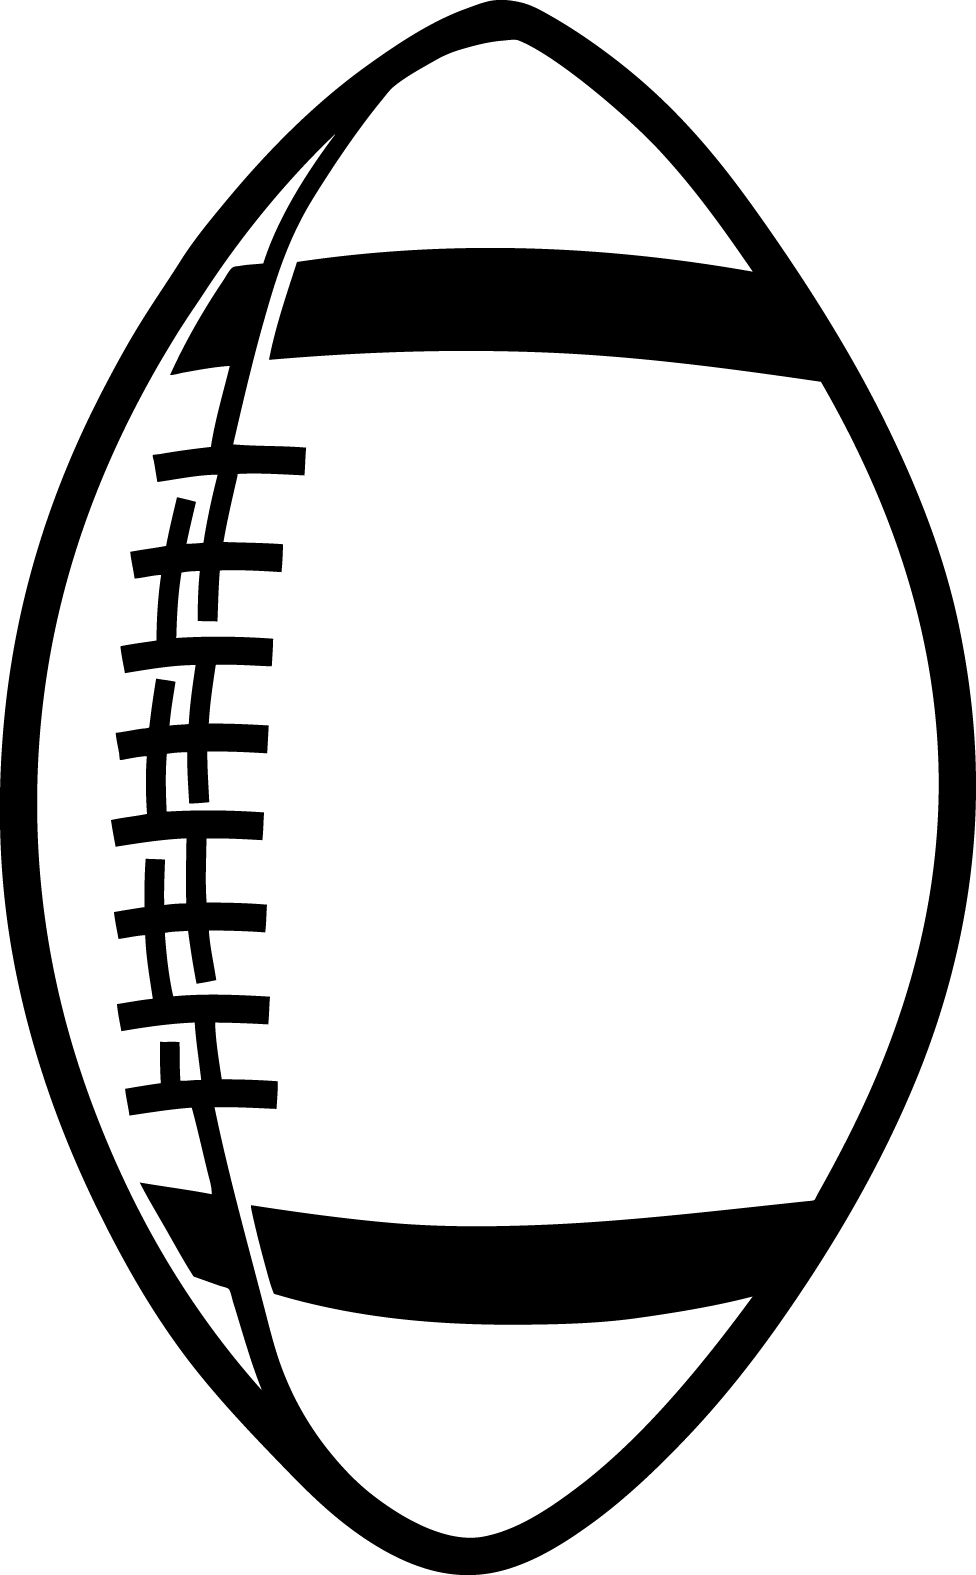 Football homecoming clipart clip black and white stock Dragonfly Outline Clipart | Clipart Panda - Free Clipart Images ... clip black and white stock